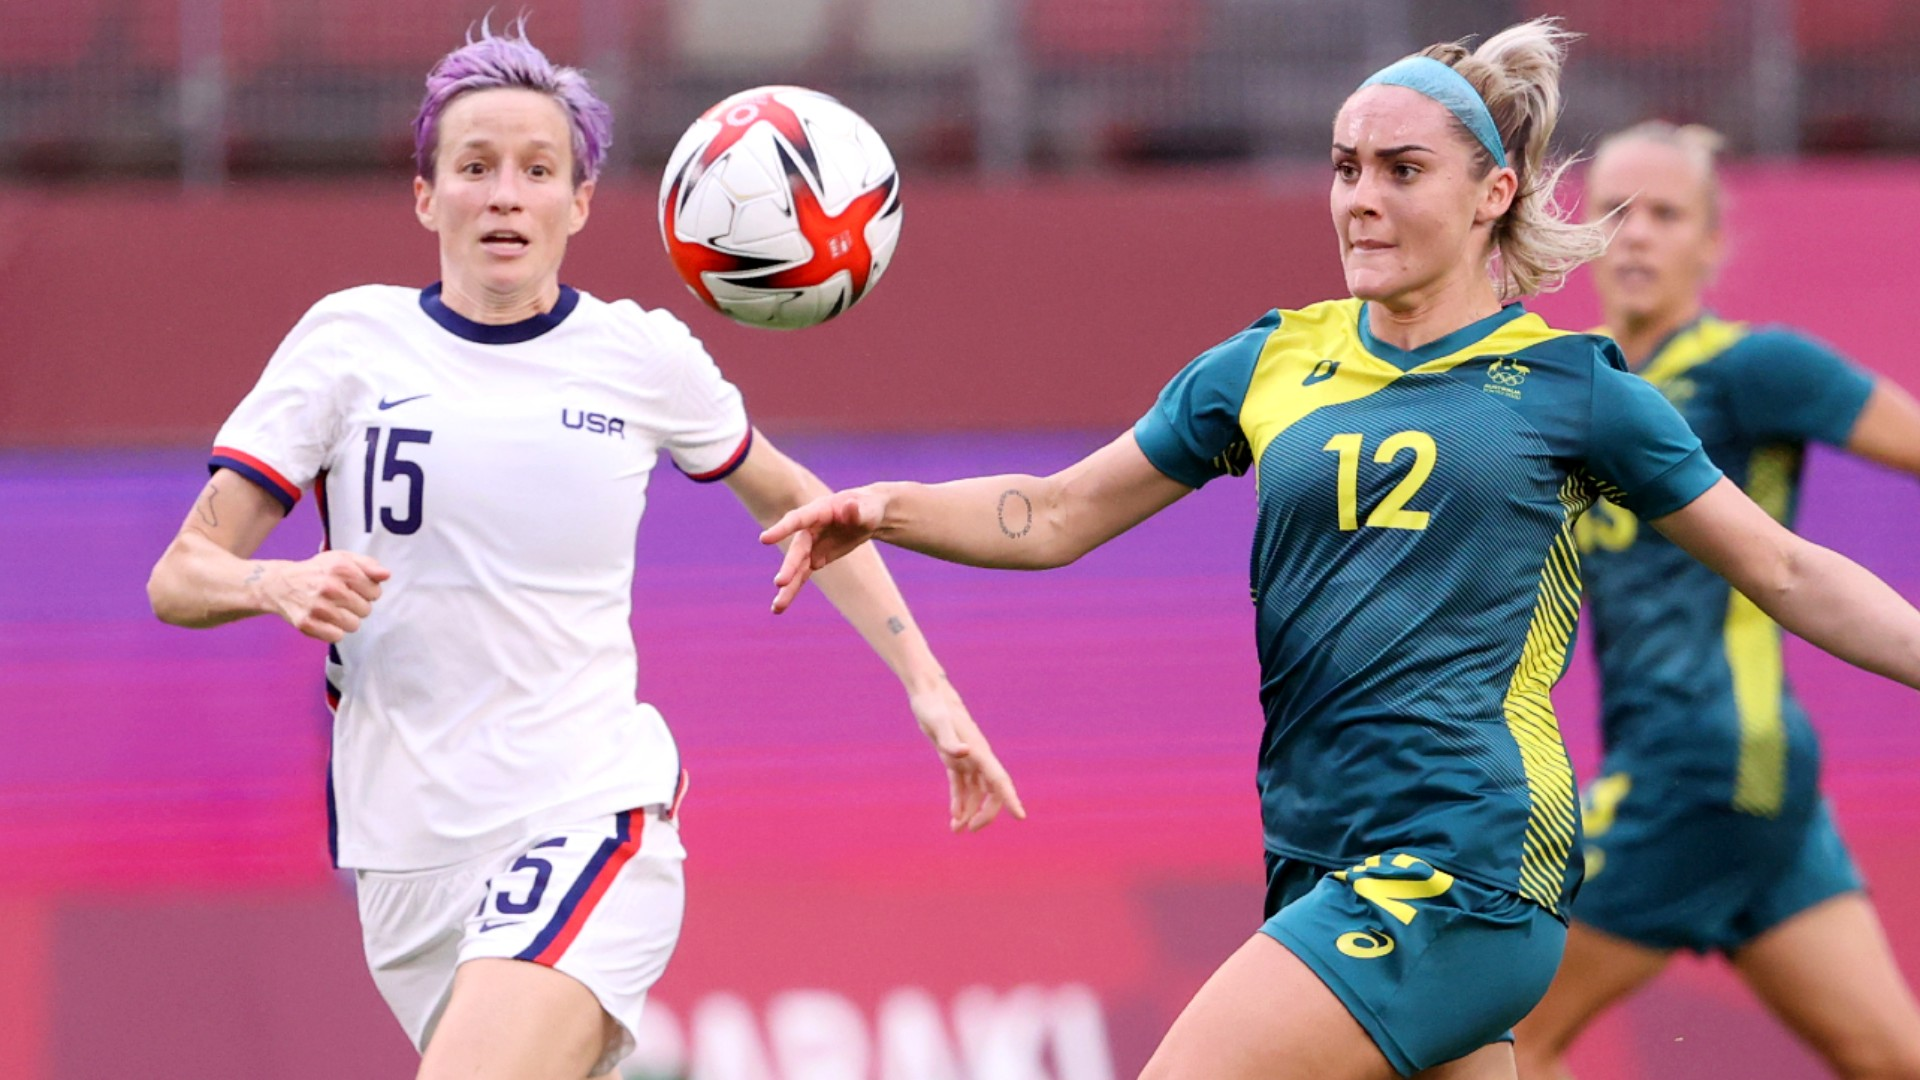 USWNT vs. Australia result: USA secures second place in Group G, quarterfinal berth after scoreless draw